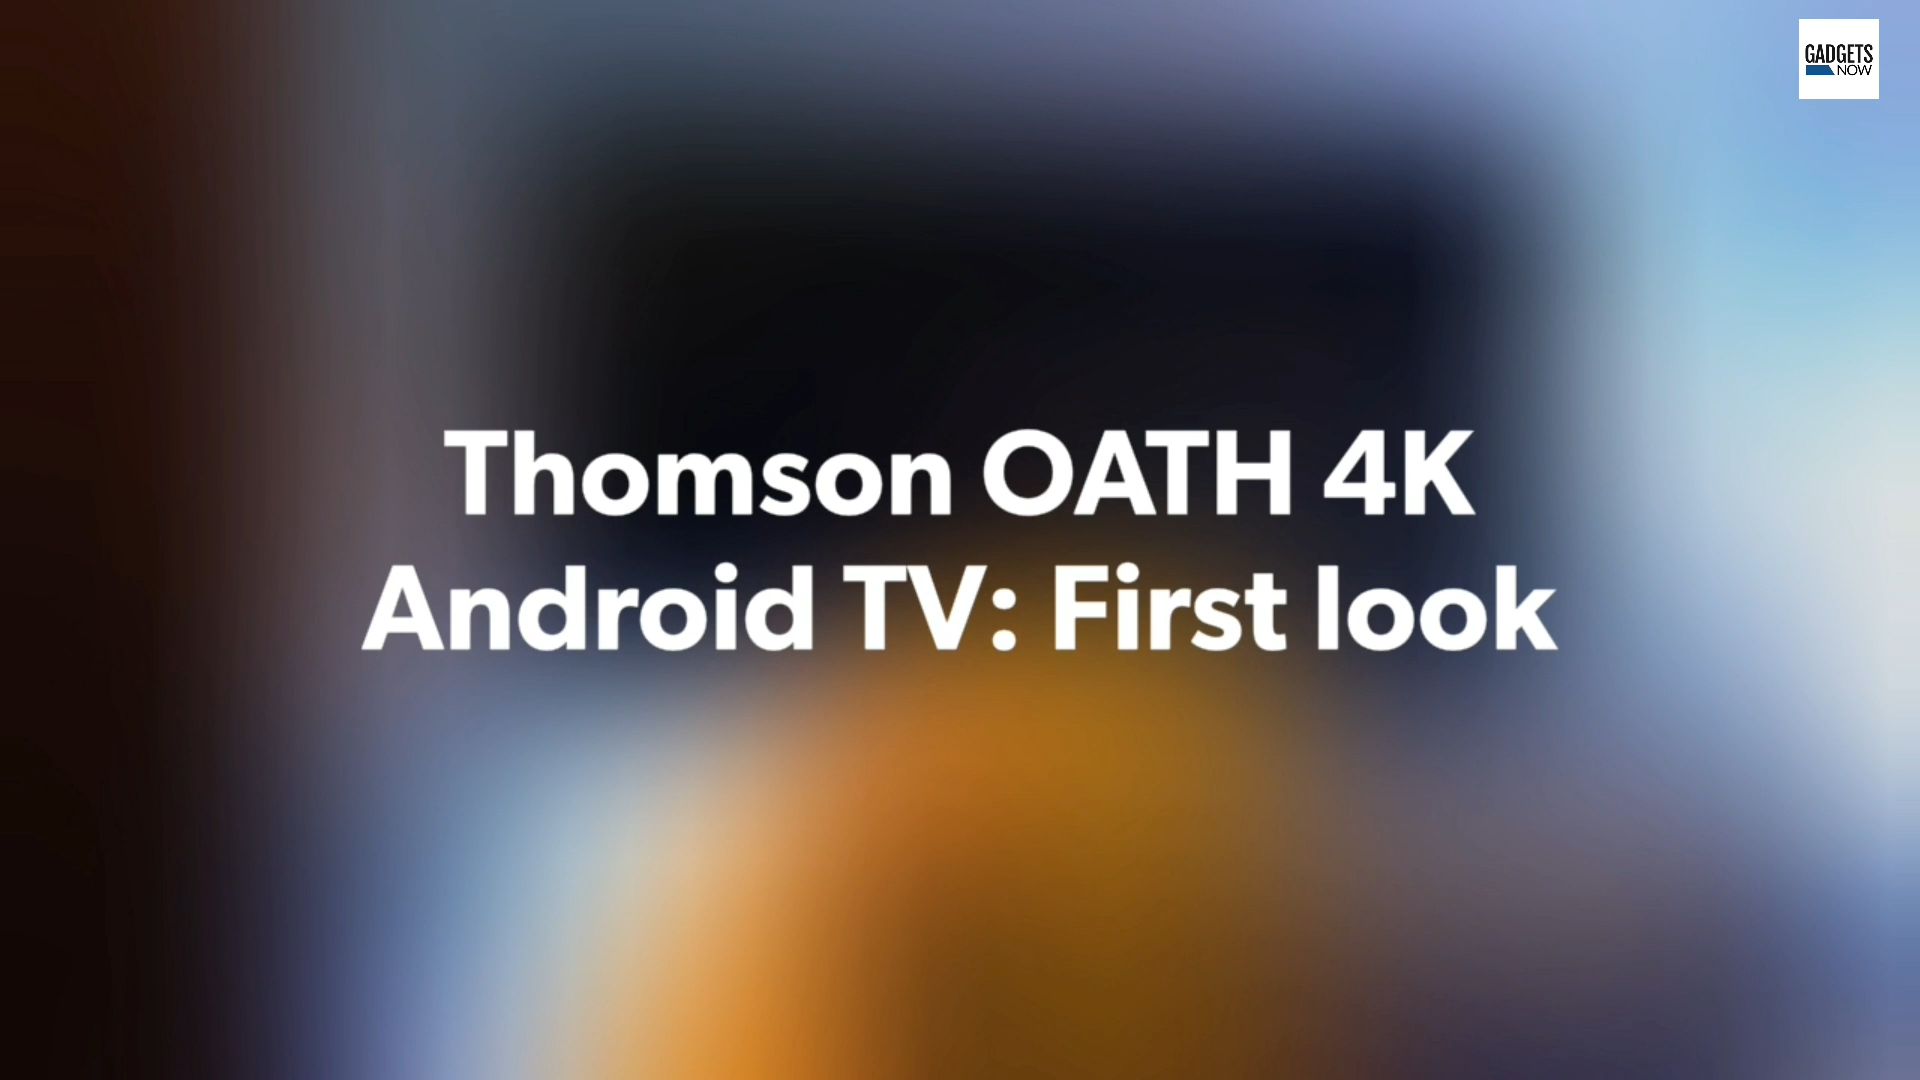 Thomson Oath 4k Android Tv First Look